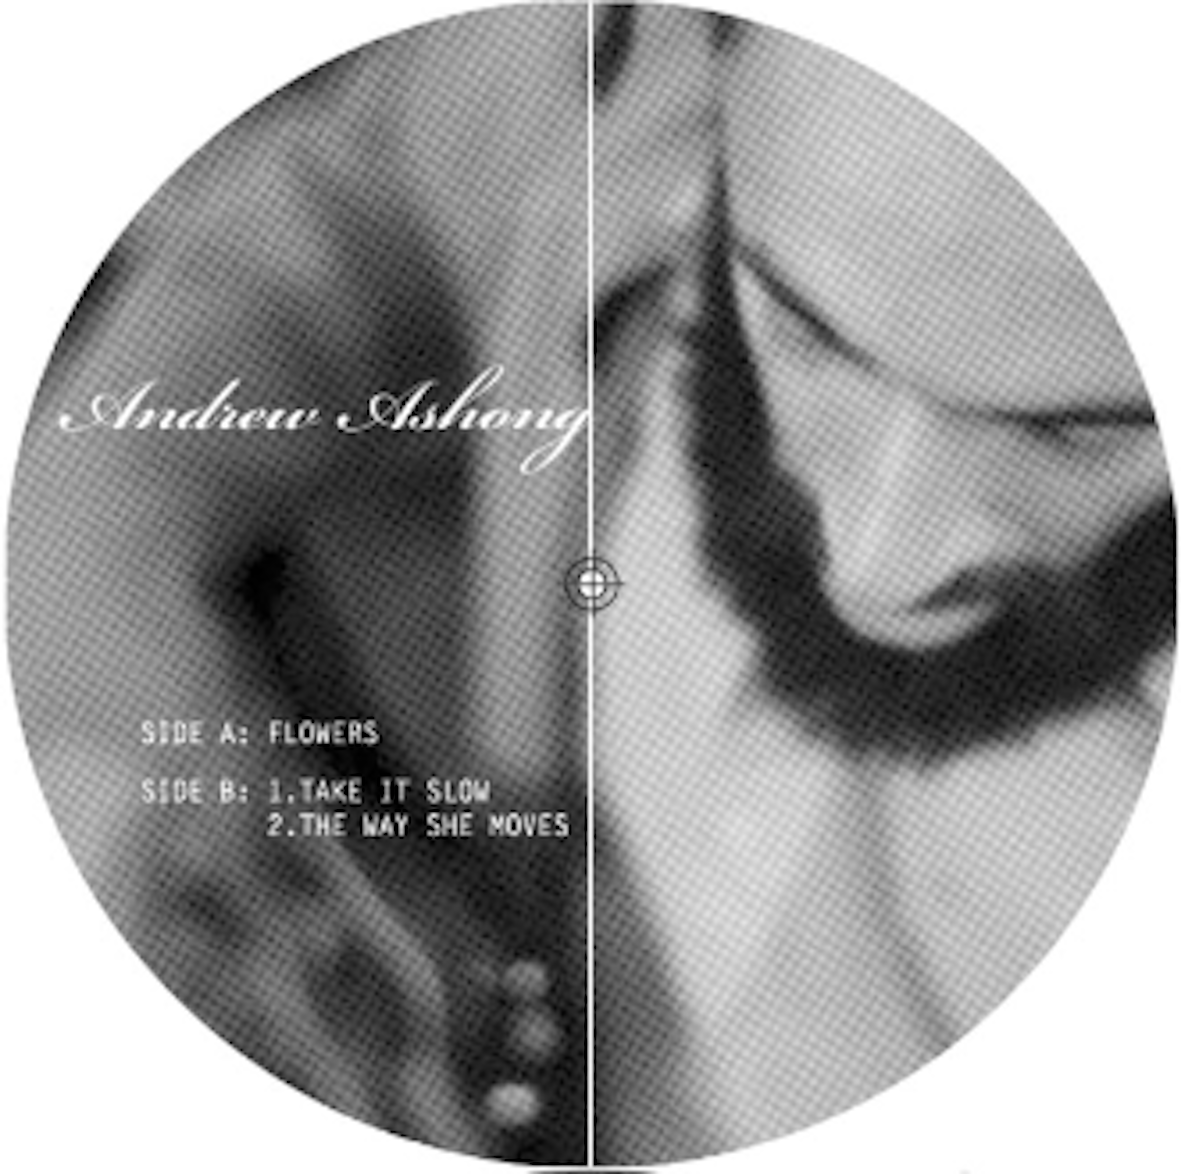 Reviews, Promo`d, Test Pressing, Dr Rob, Andrew Ashong, Theo Parrish, Sound Signature, Flowers,